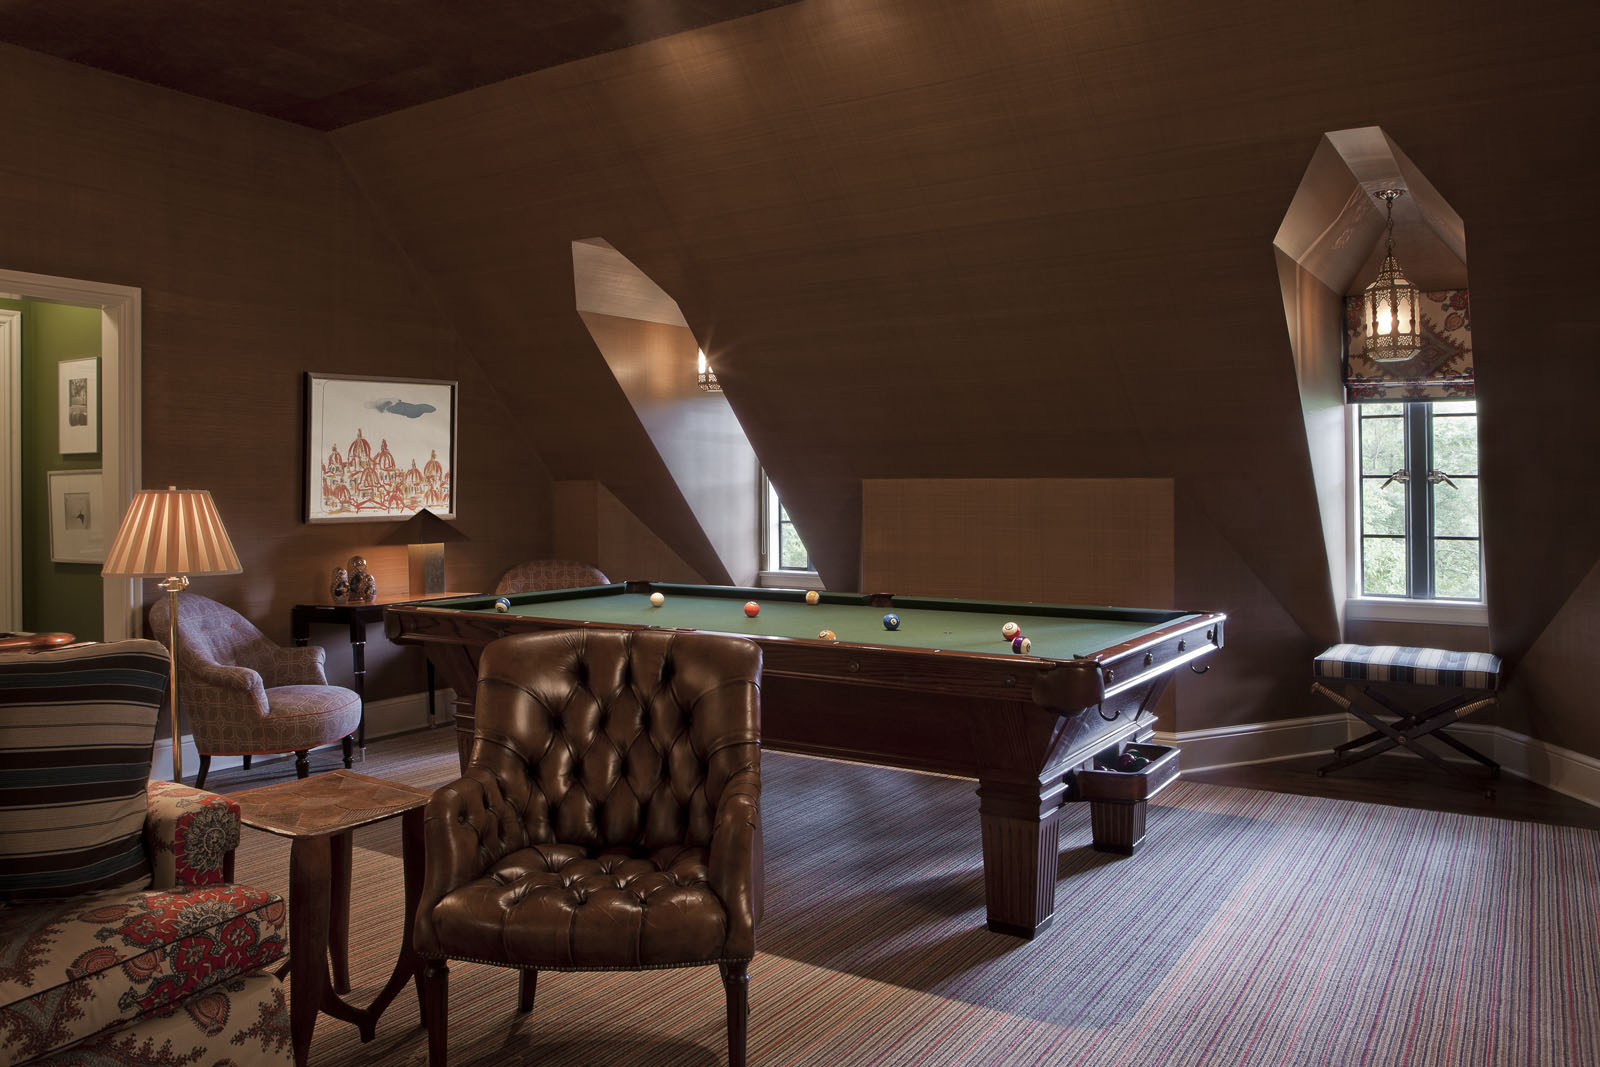 Part of the former staff quarters on the third floor was turned into a billiard room. The early-20th-century library chairs, vintage pool table, and leather-tiled ceiling add to the clubby atmosphere.